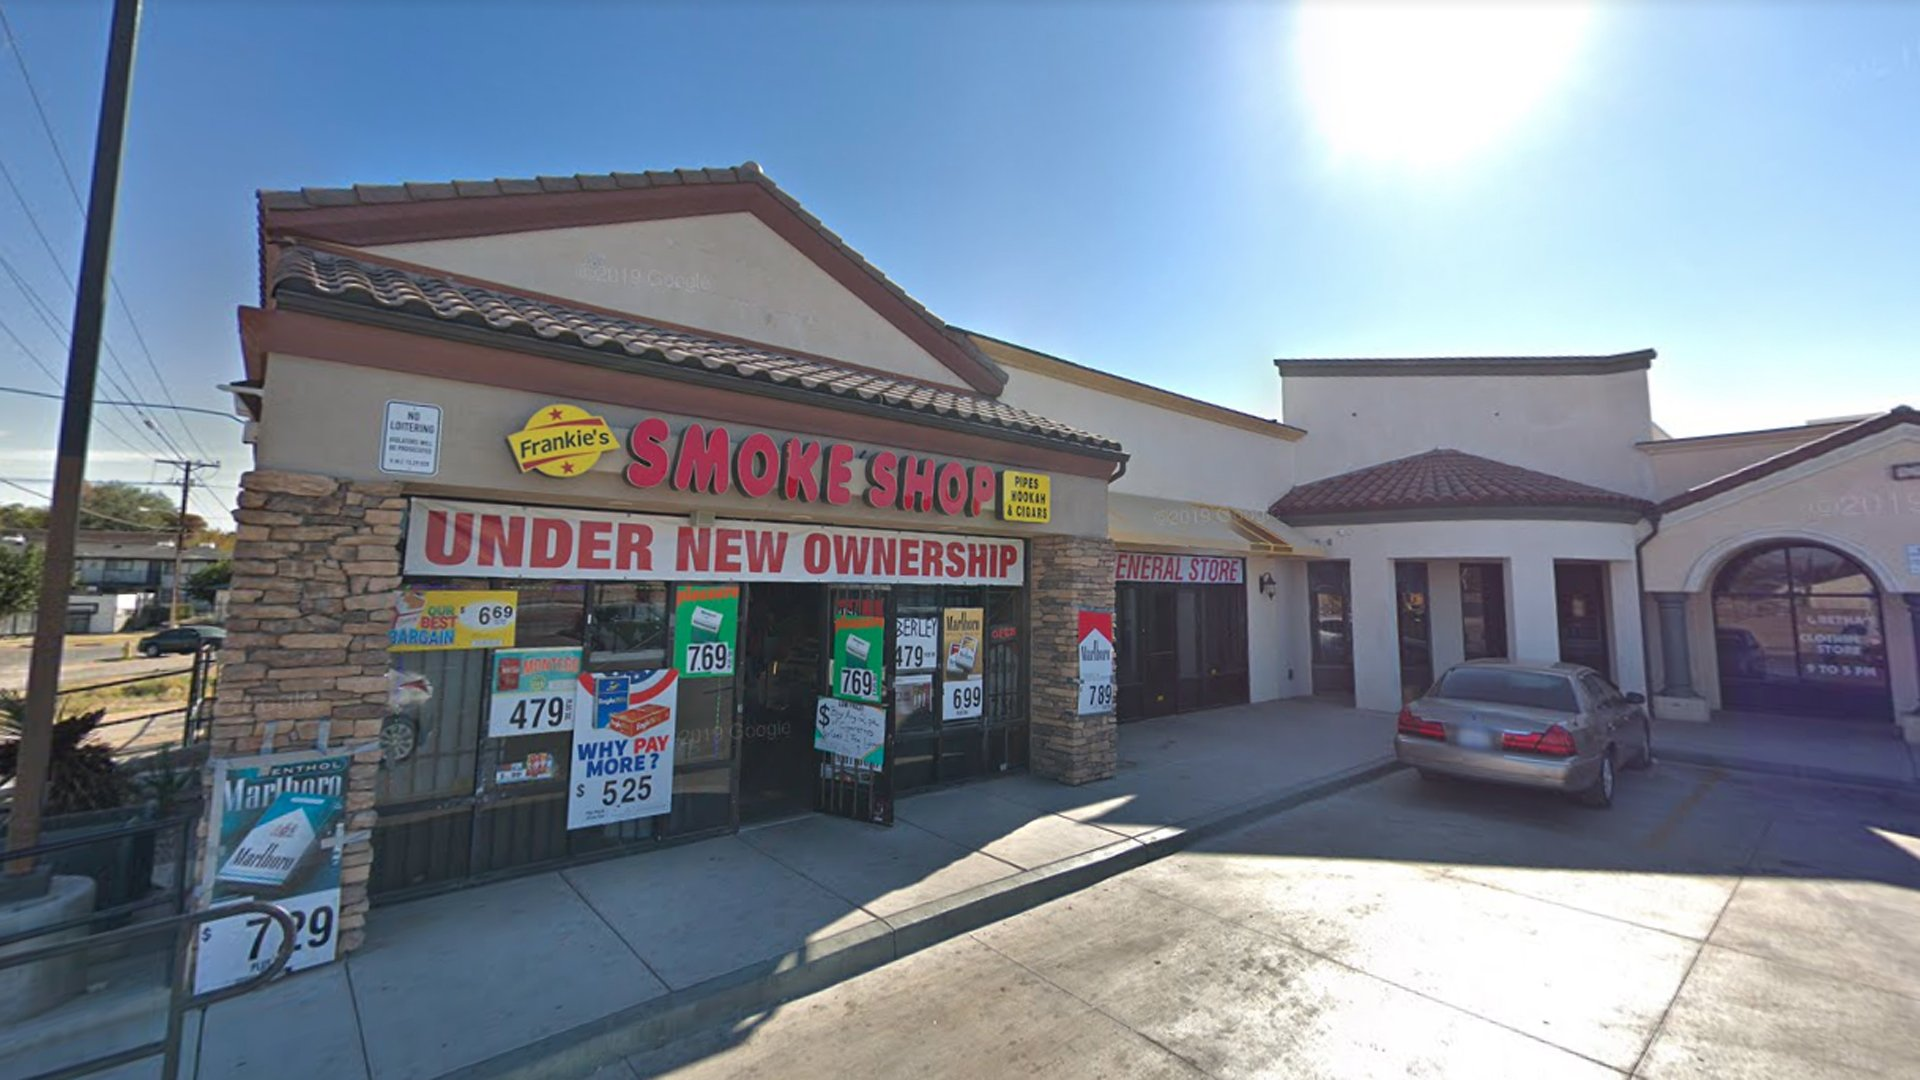 Frankie's Smoke Shop in Victorville appears in an undated image from Google Maps.